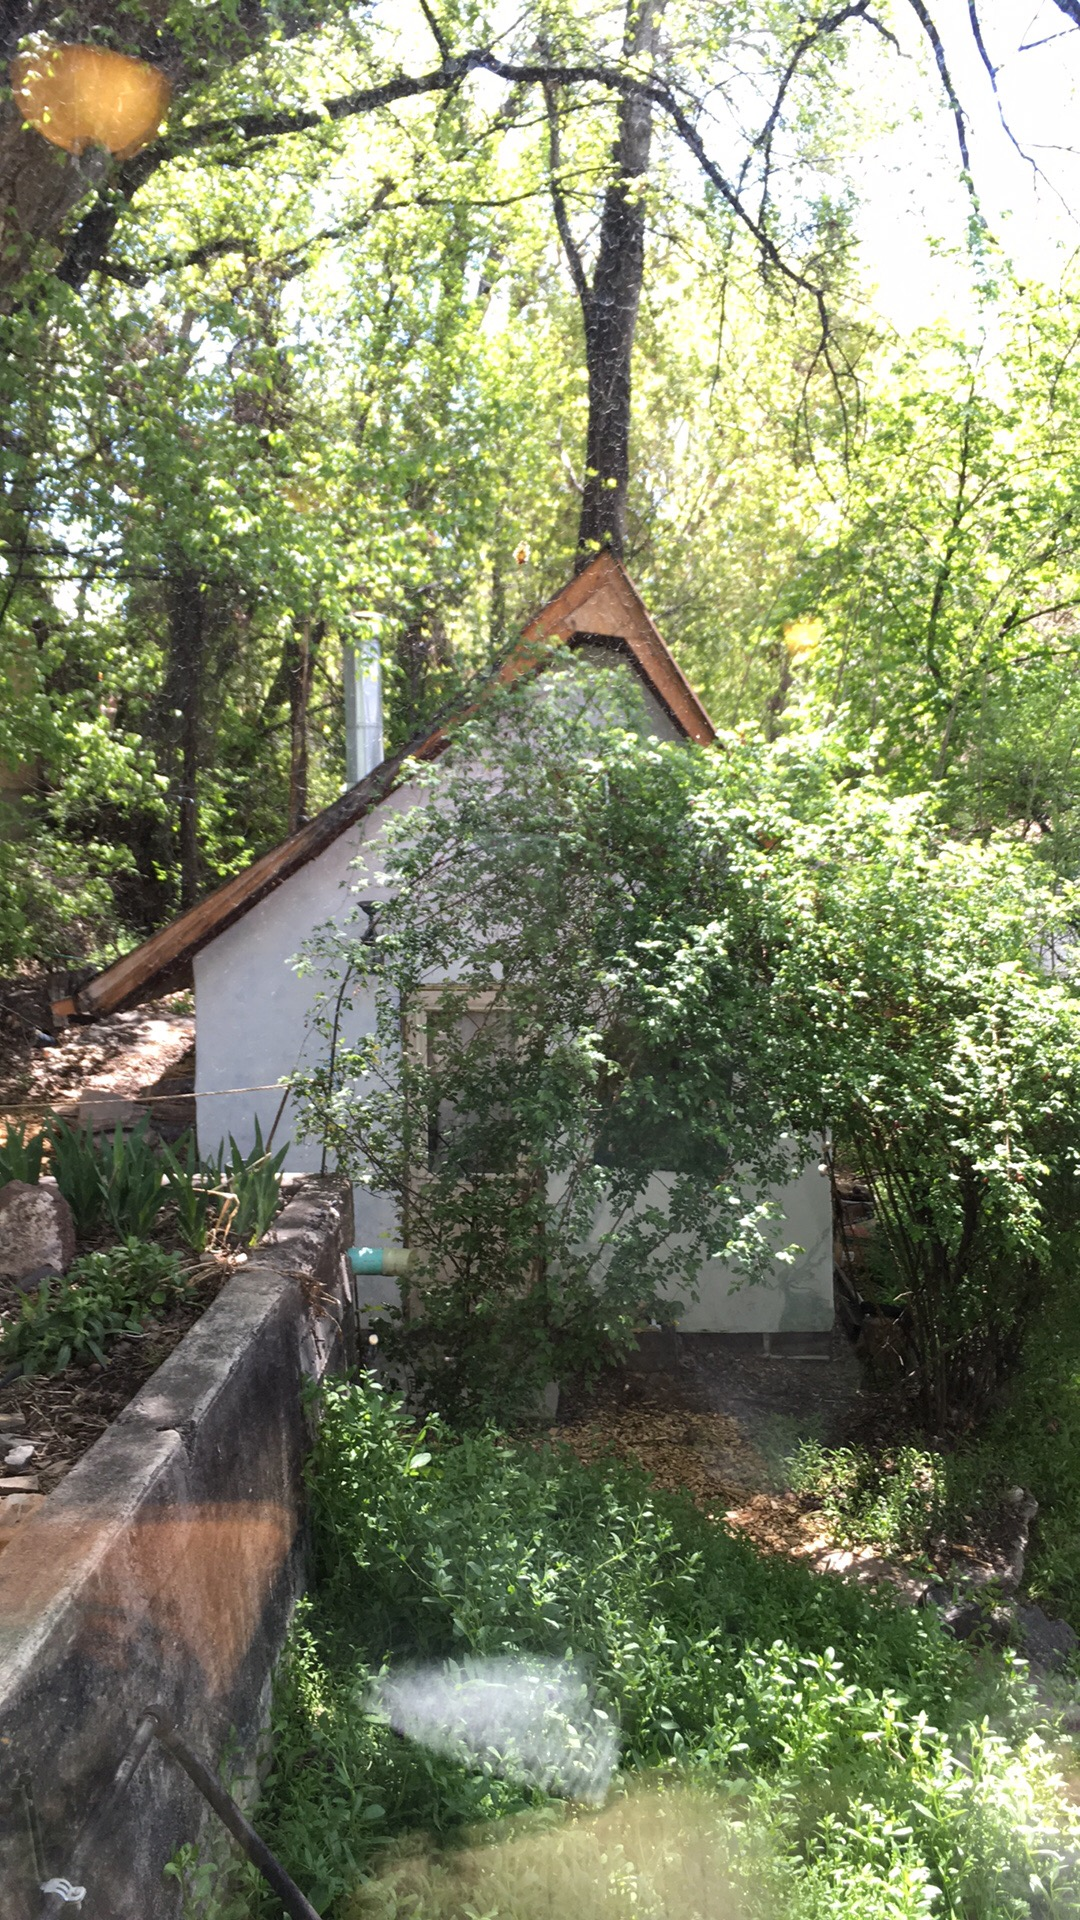 The Gingerbread Cottage where I lived, composed and practiced music